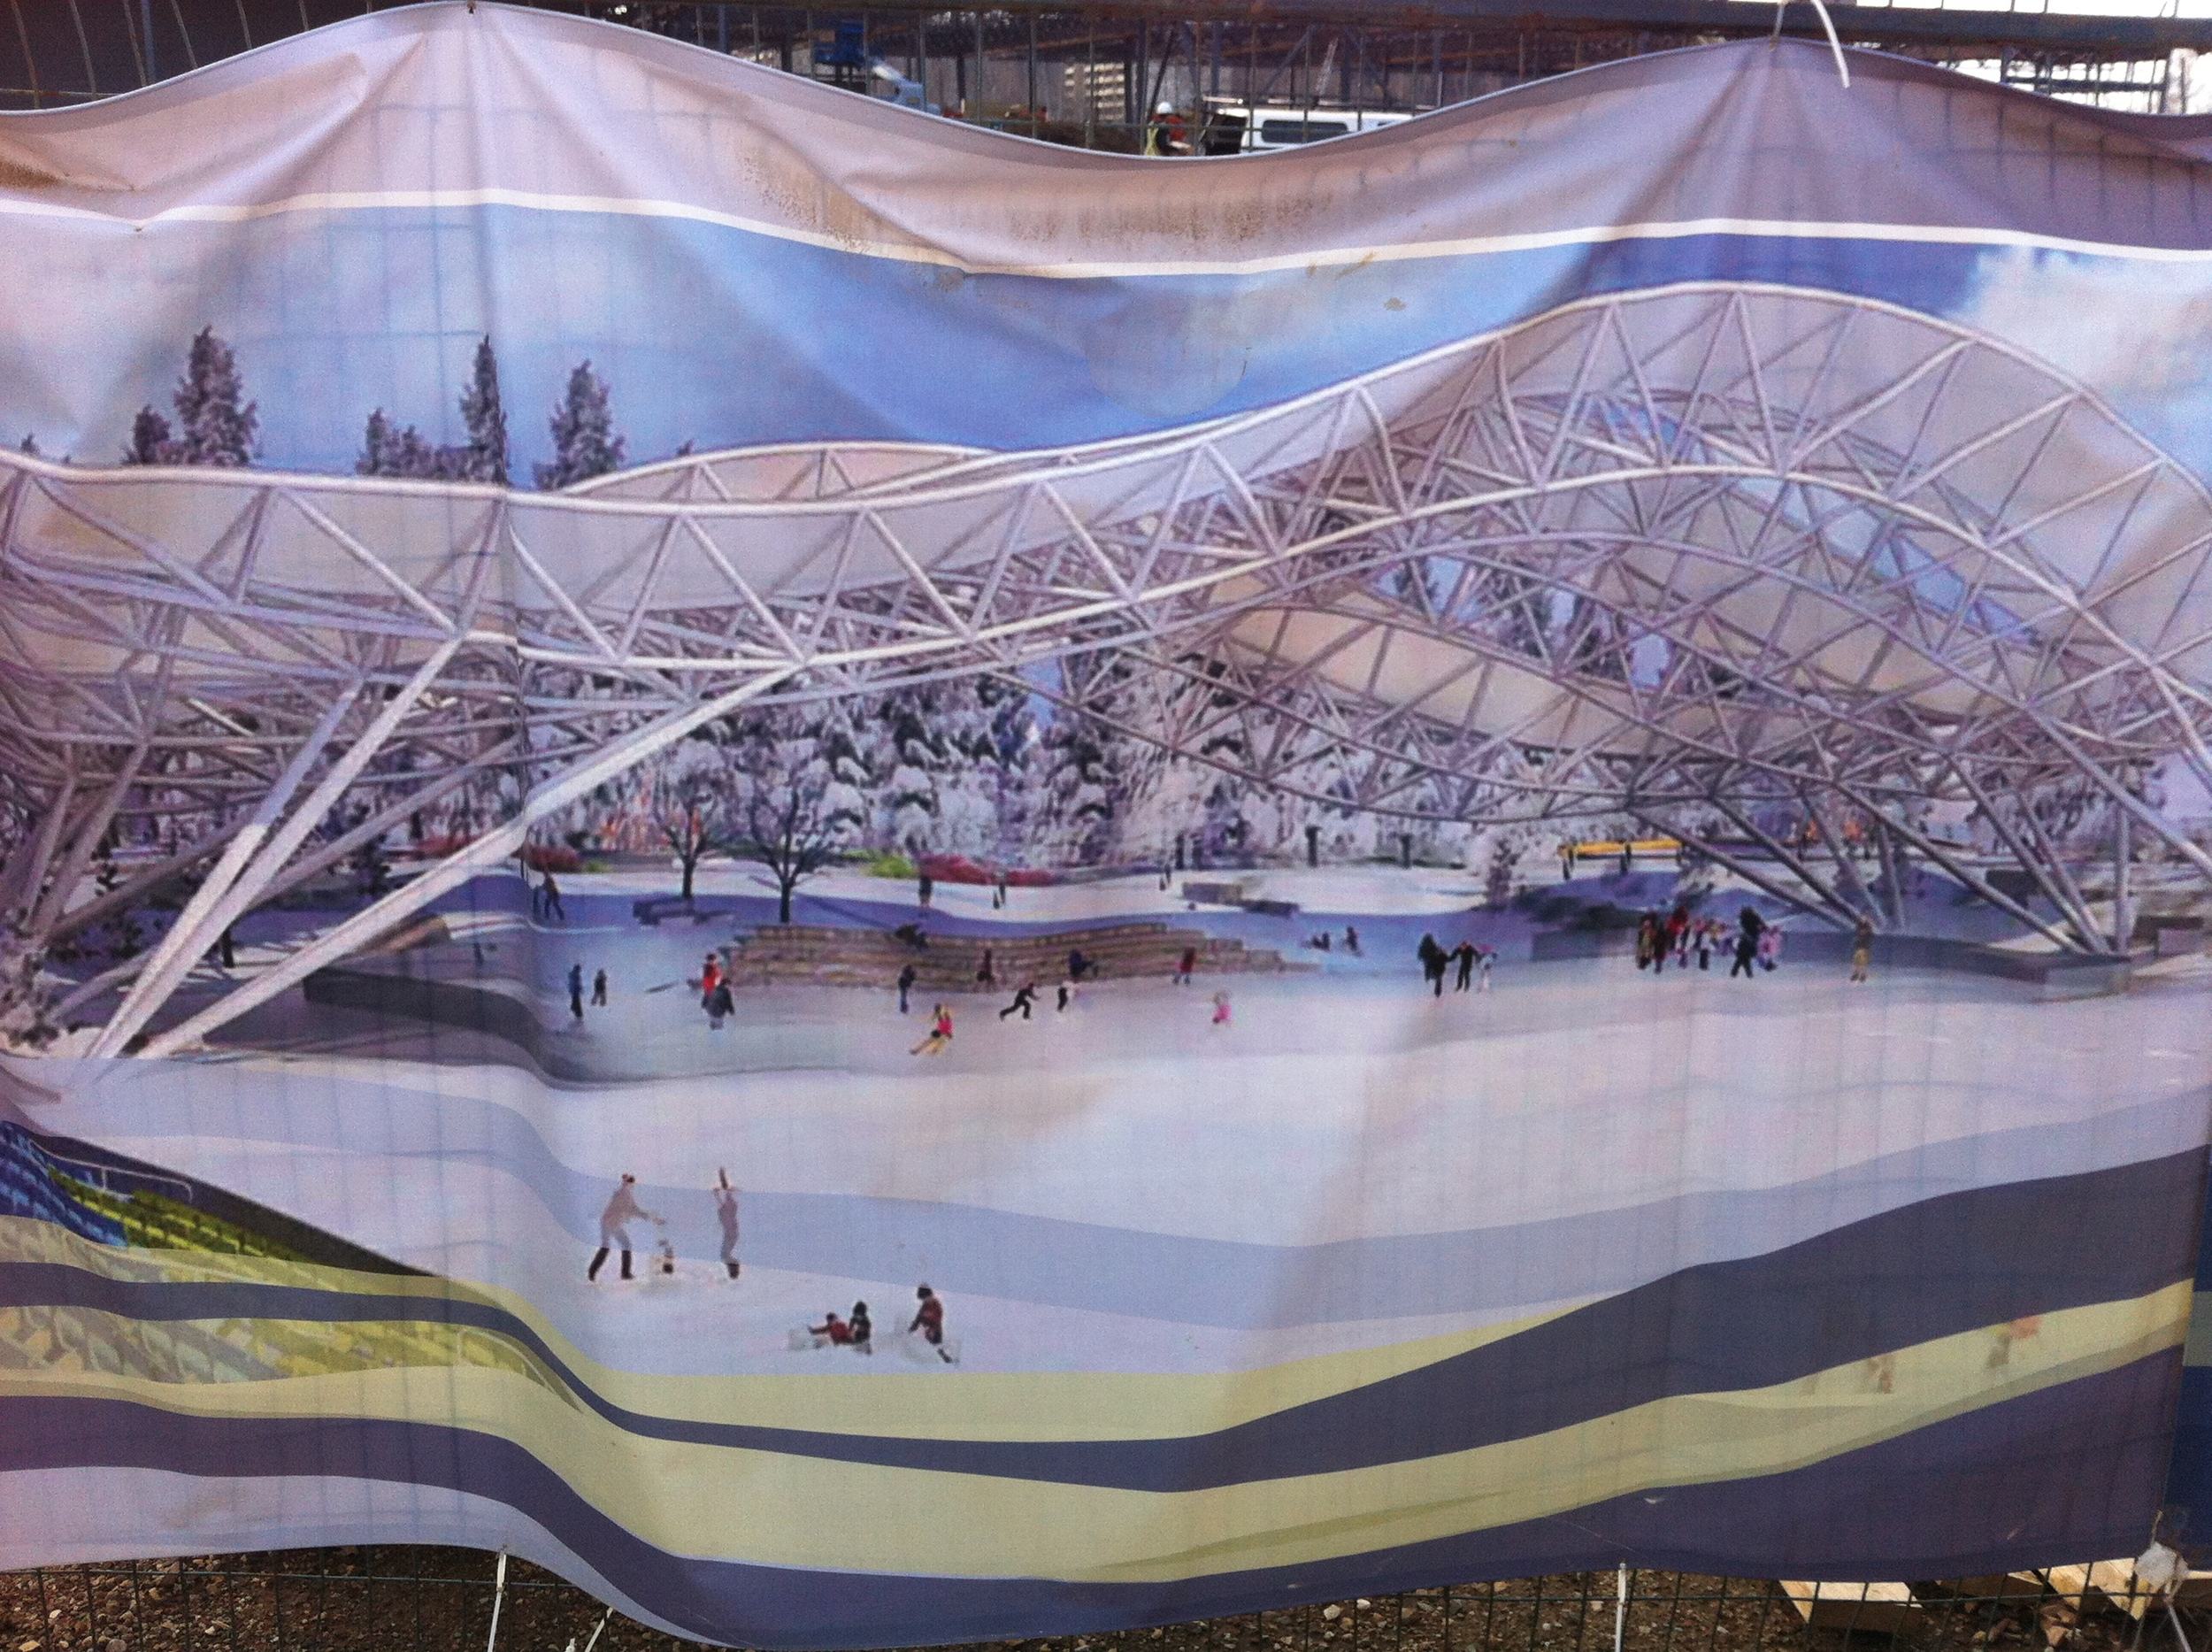 This is an artist rendering of the Molson Outdoor Rink on the construction fence. This beats anything Calgary, Vancouver or Edmonton has. Things are happening!